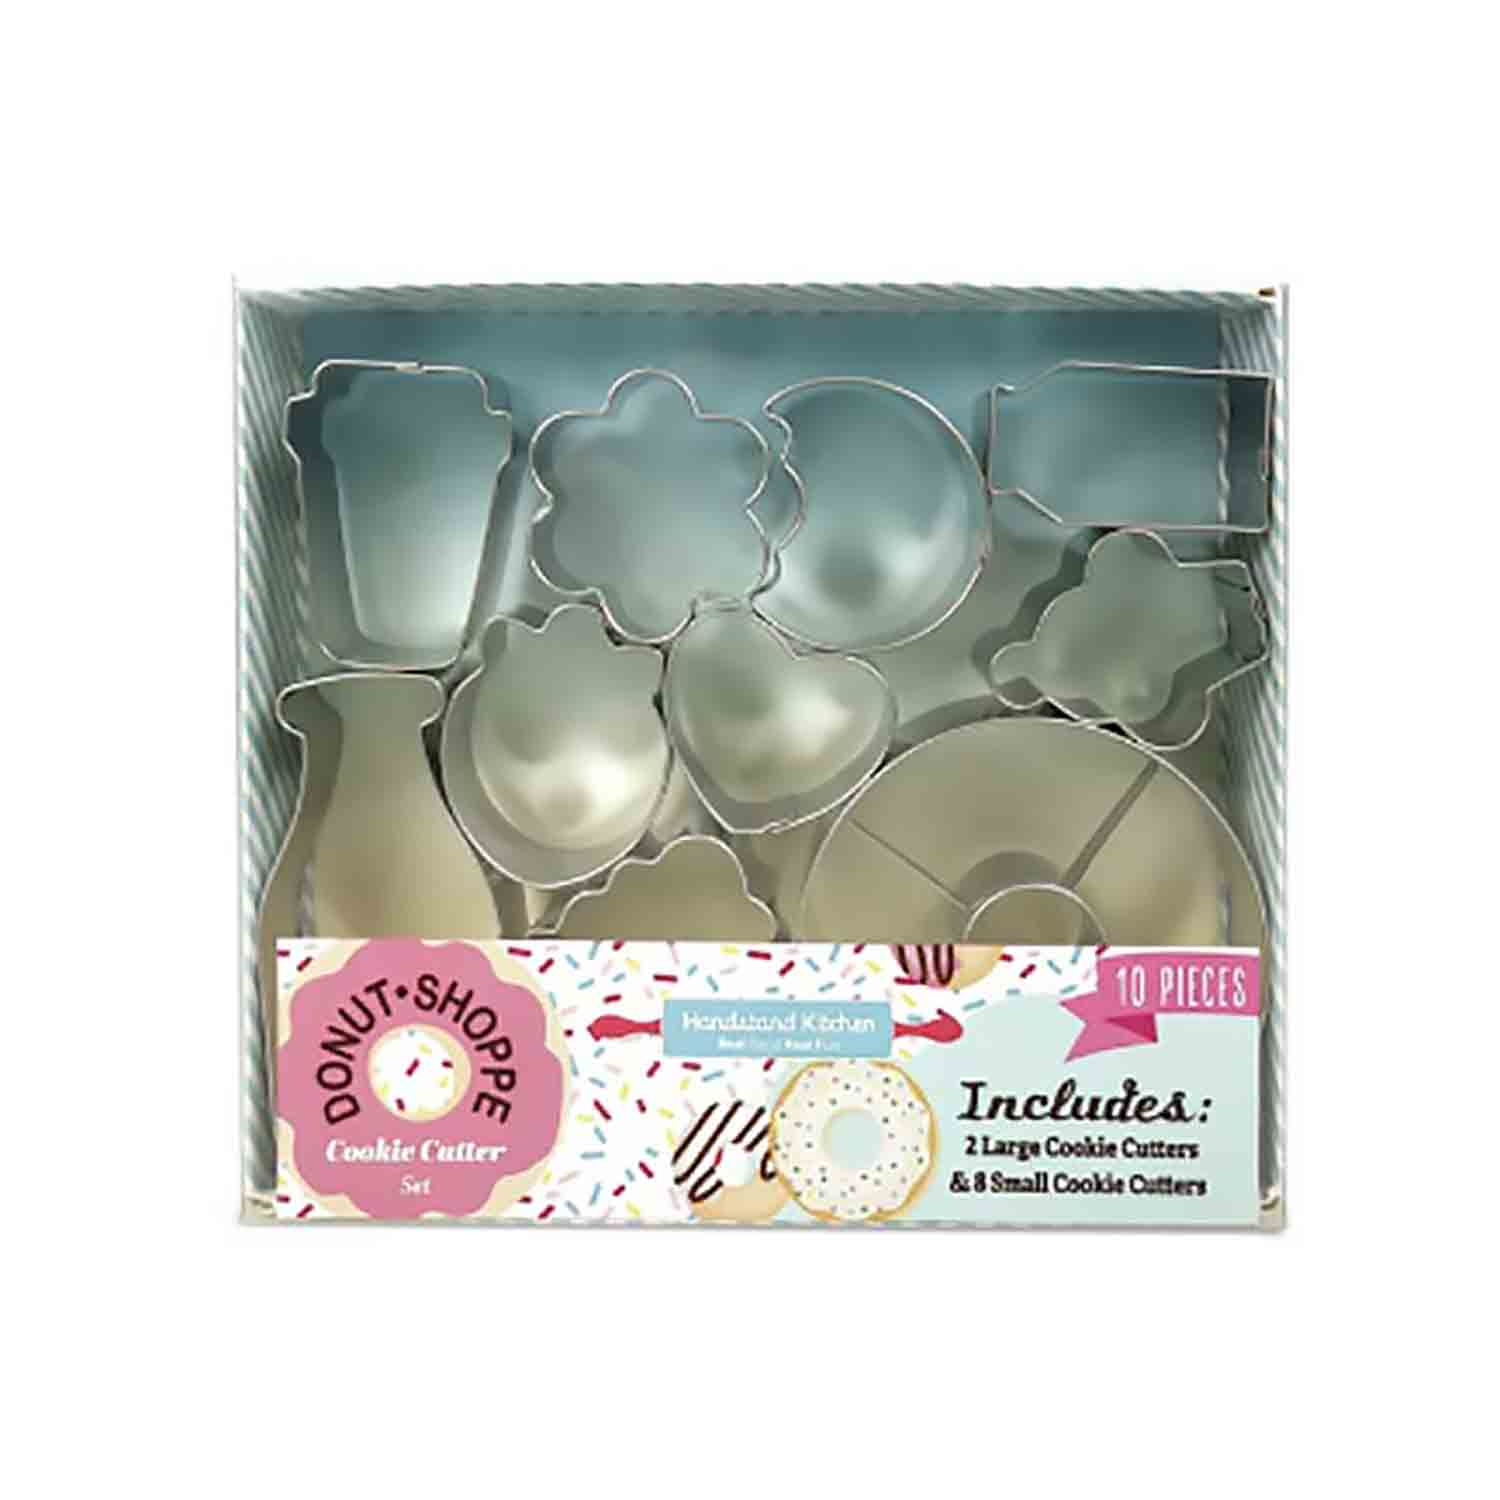 Donut Shoppe Cookie Cutter Set